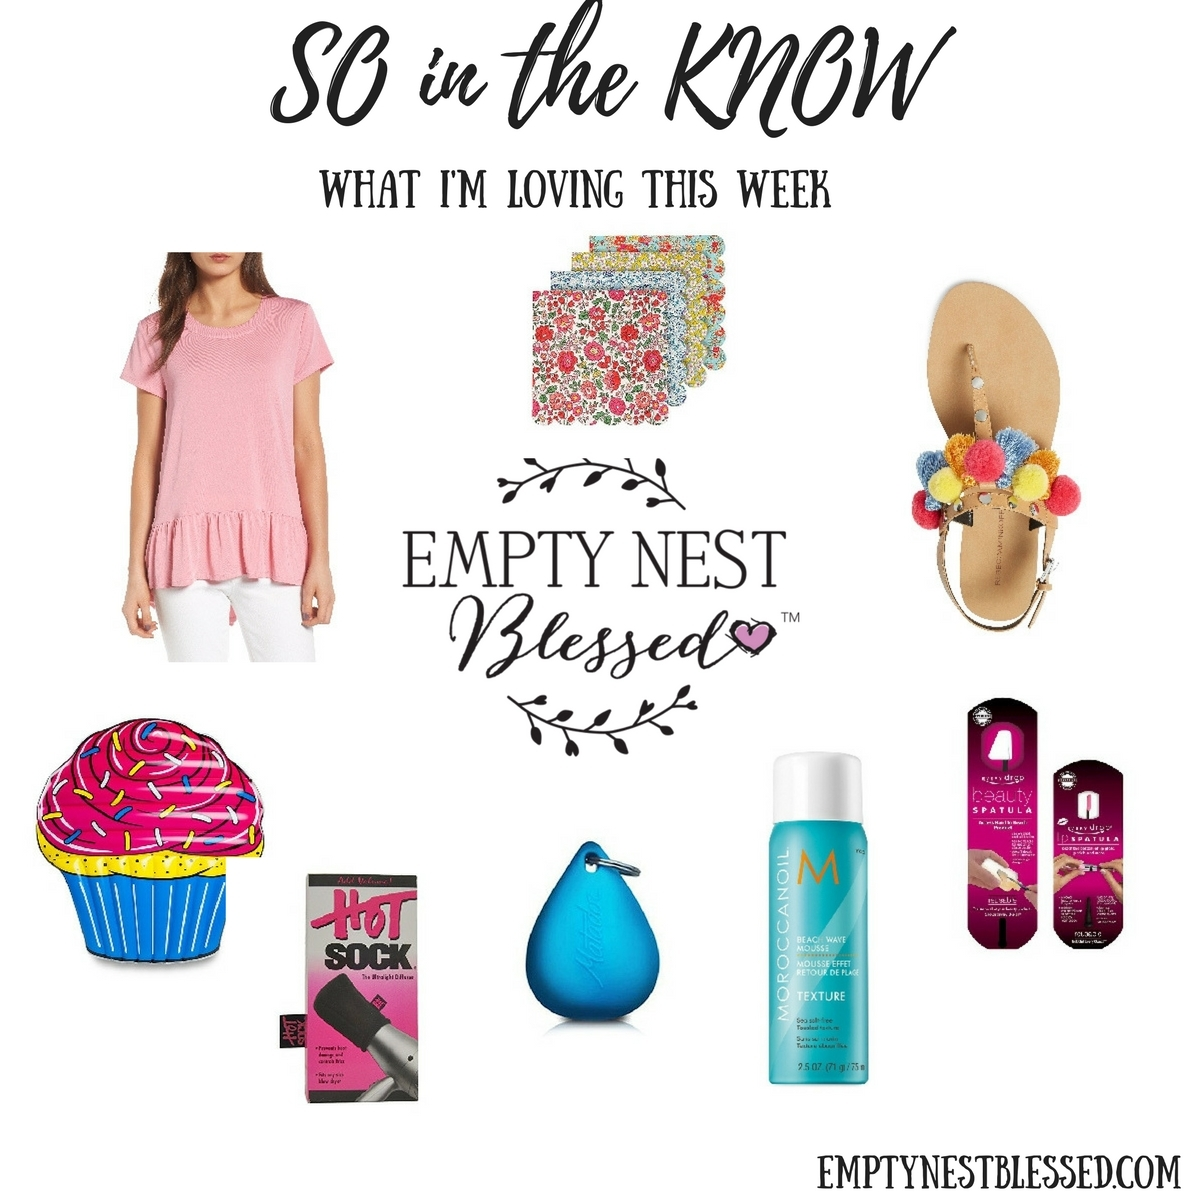 Learning & Growing in the Empty Nest (SO in the KNOW)